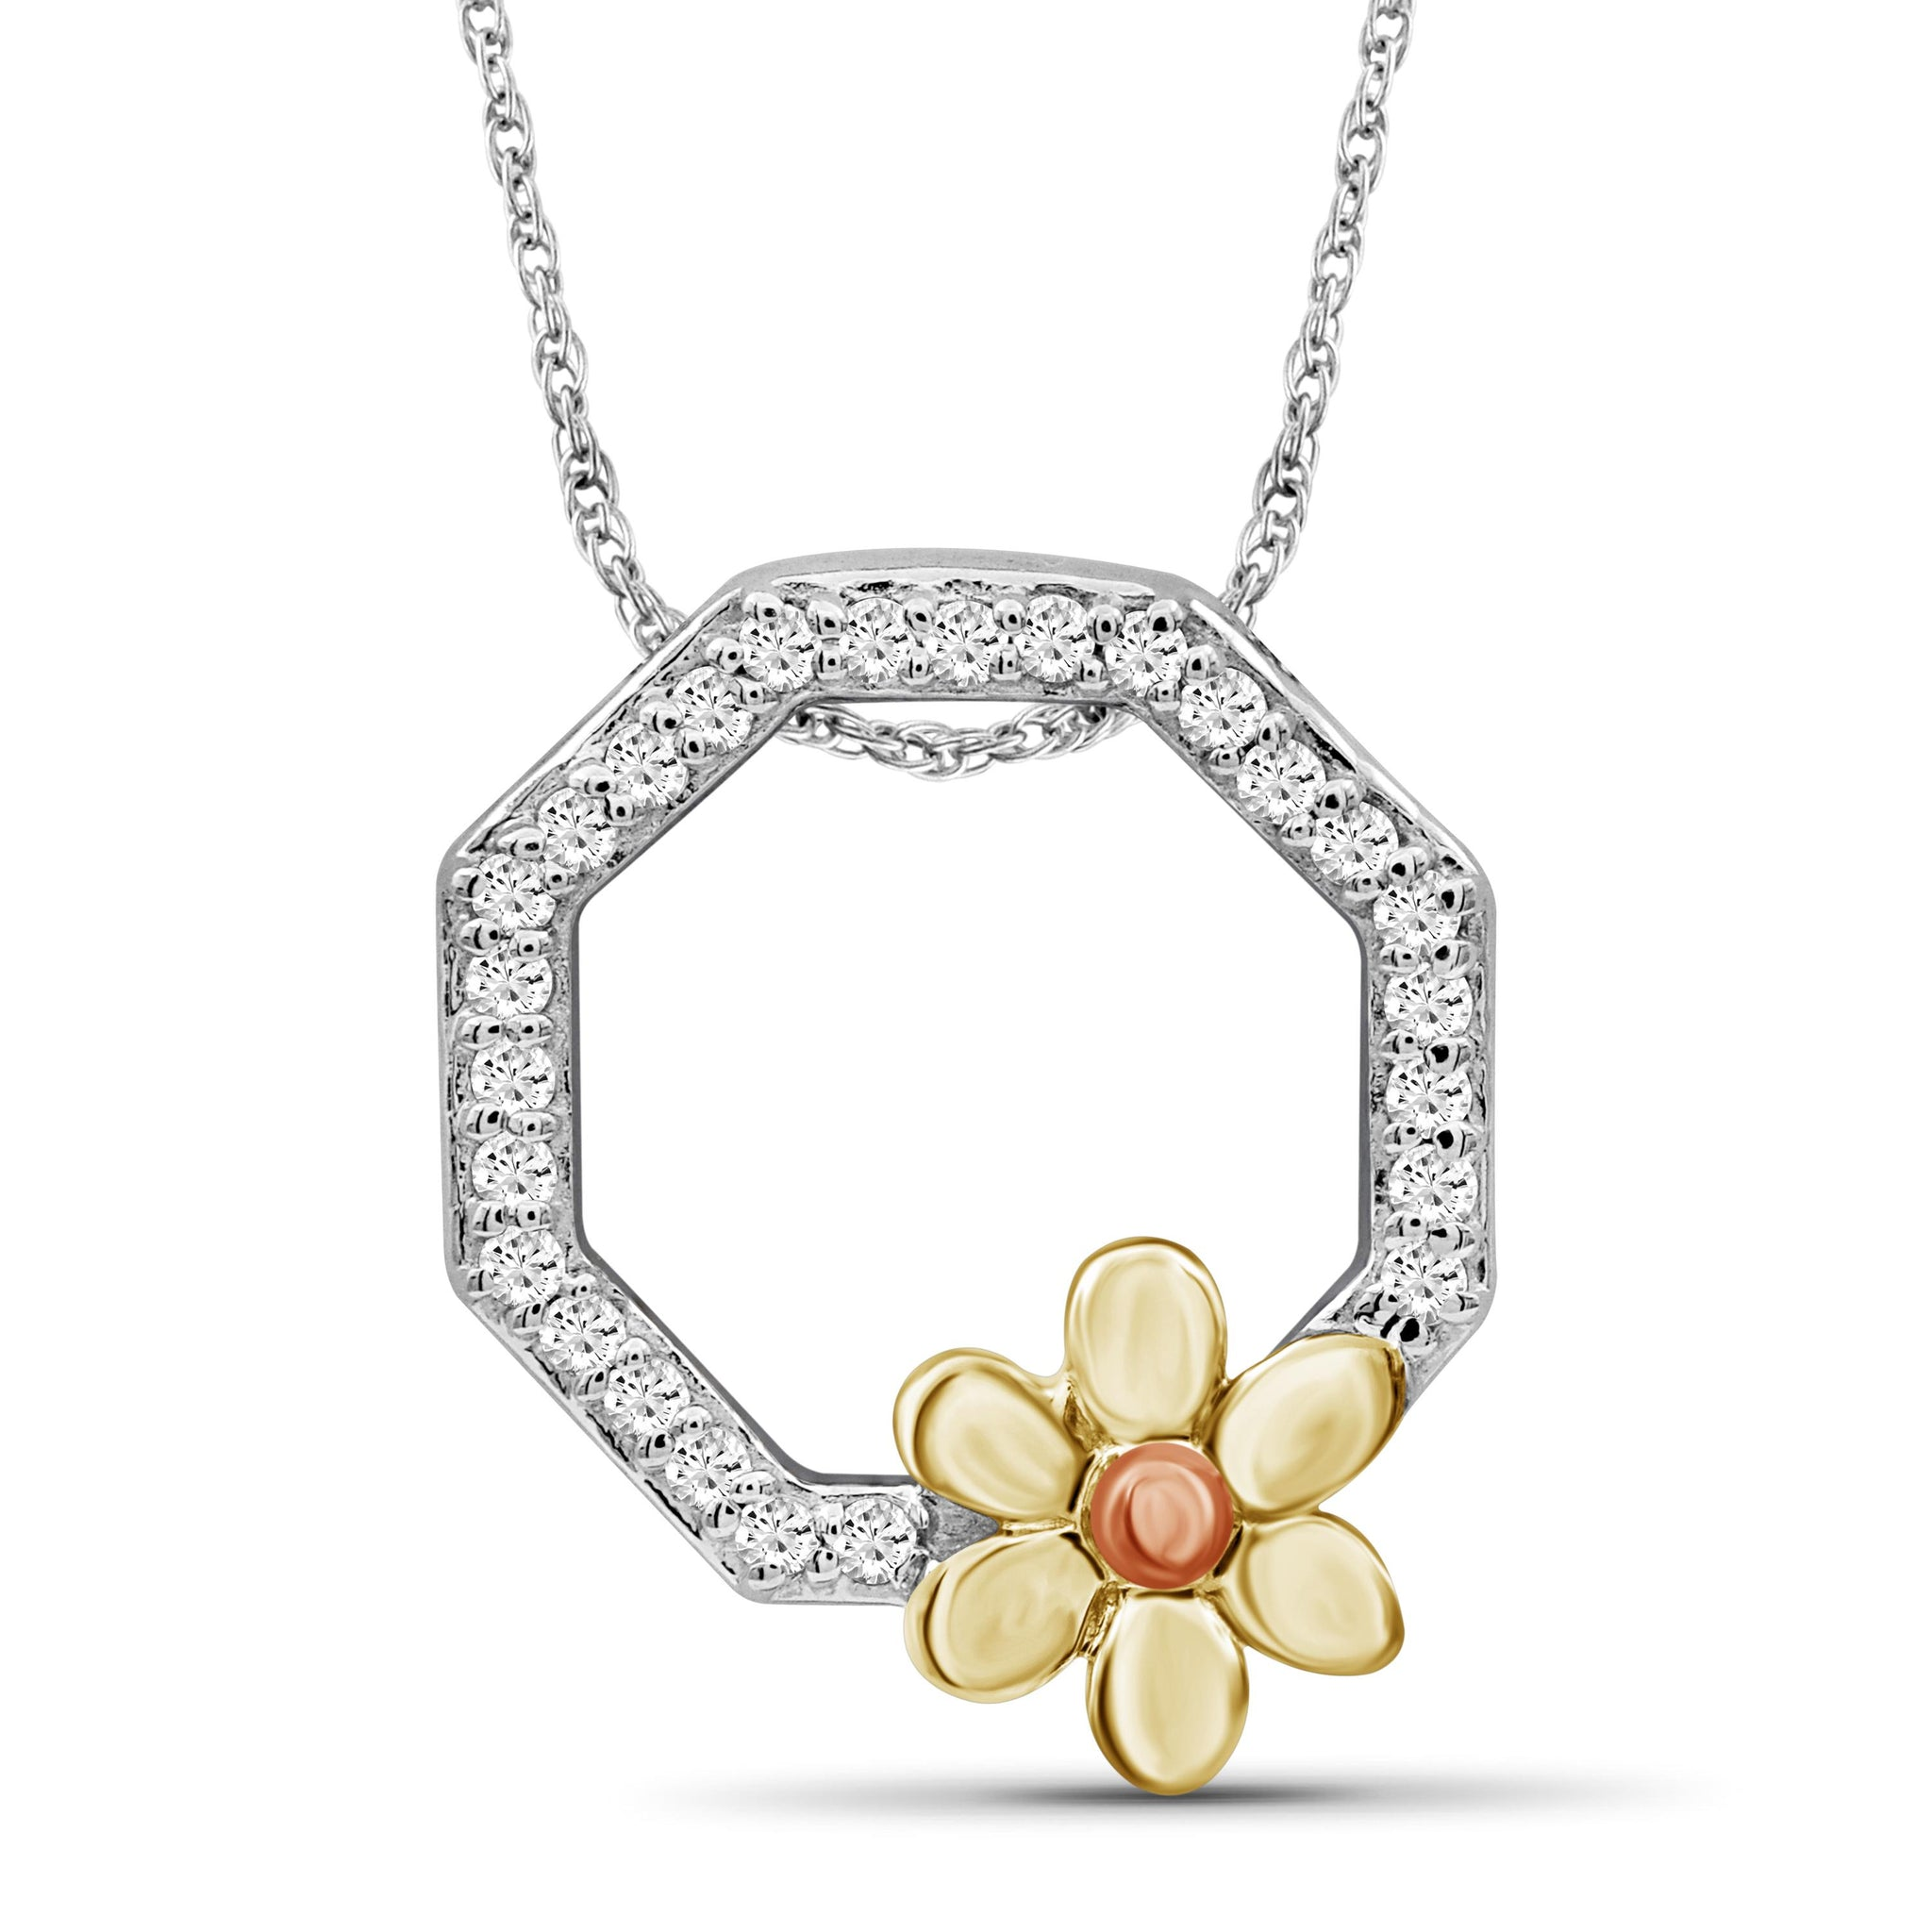 JewelonFire 1/10 Carat T.W. White Diamond Three Tone Sterling Silver Flower Octagon Pendant